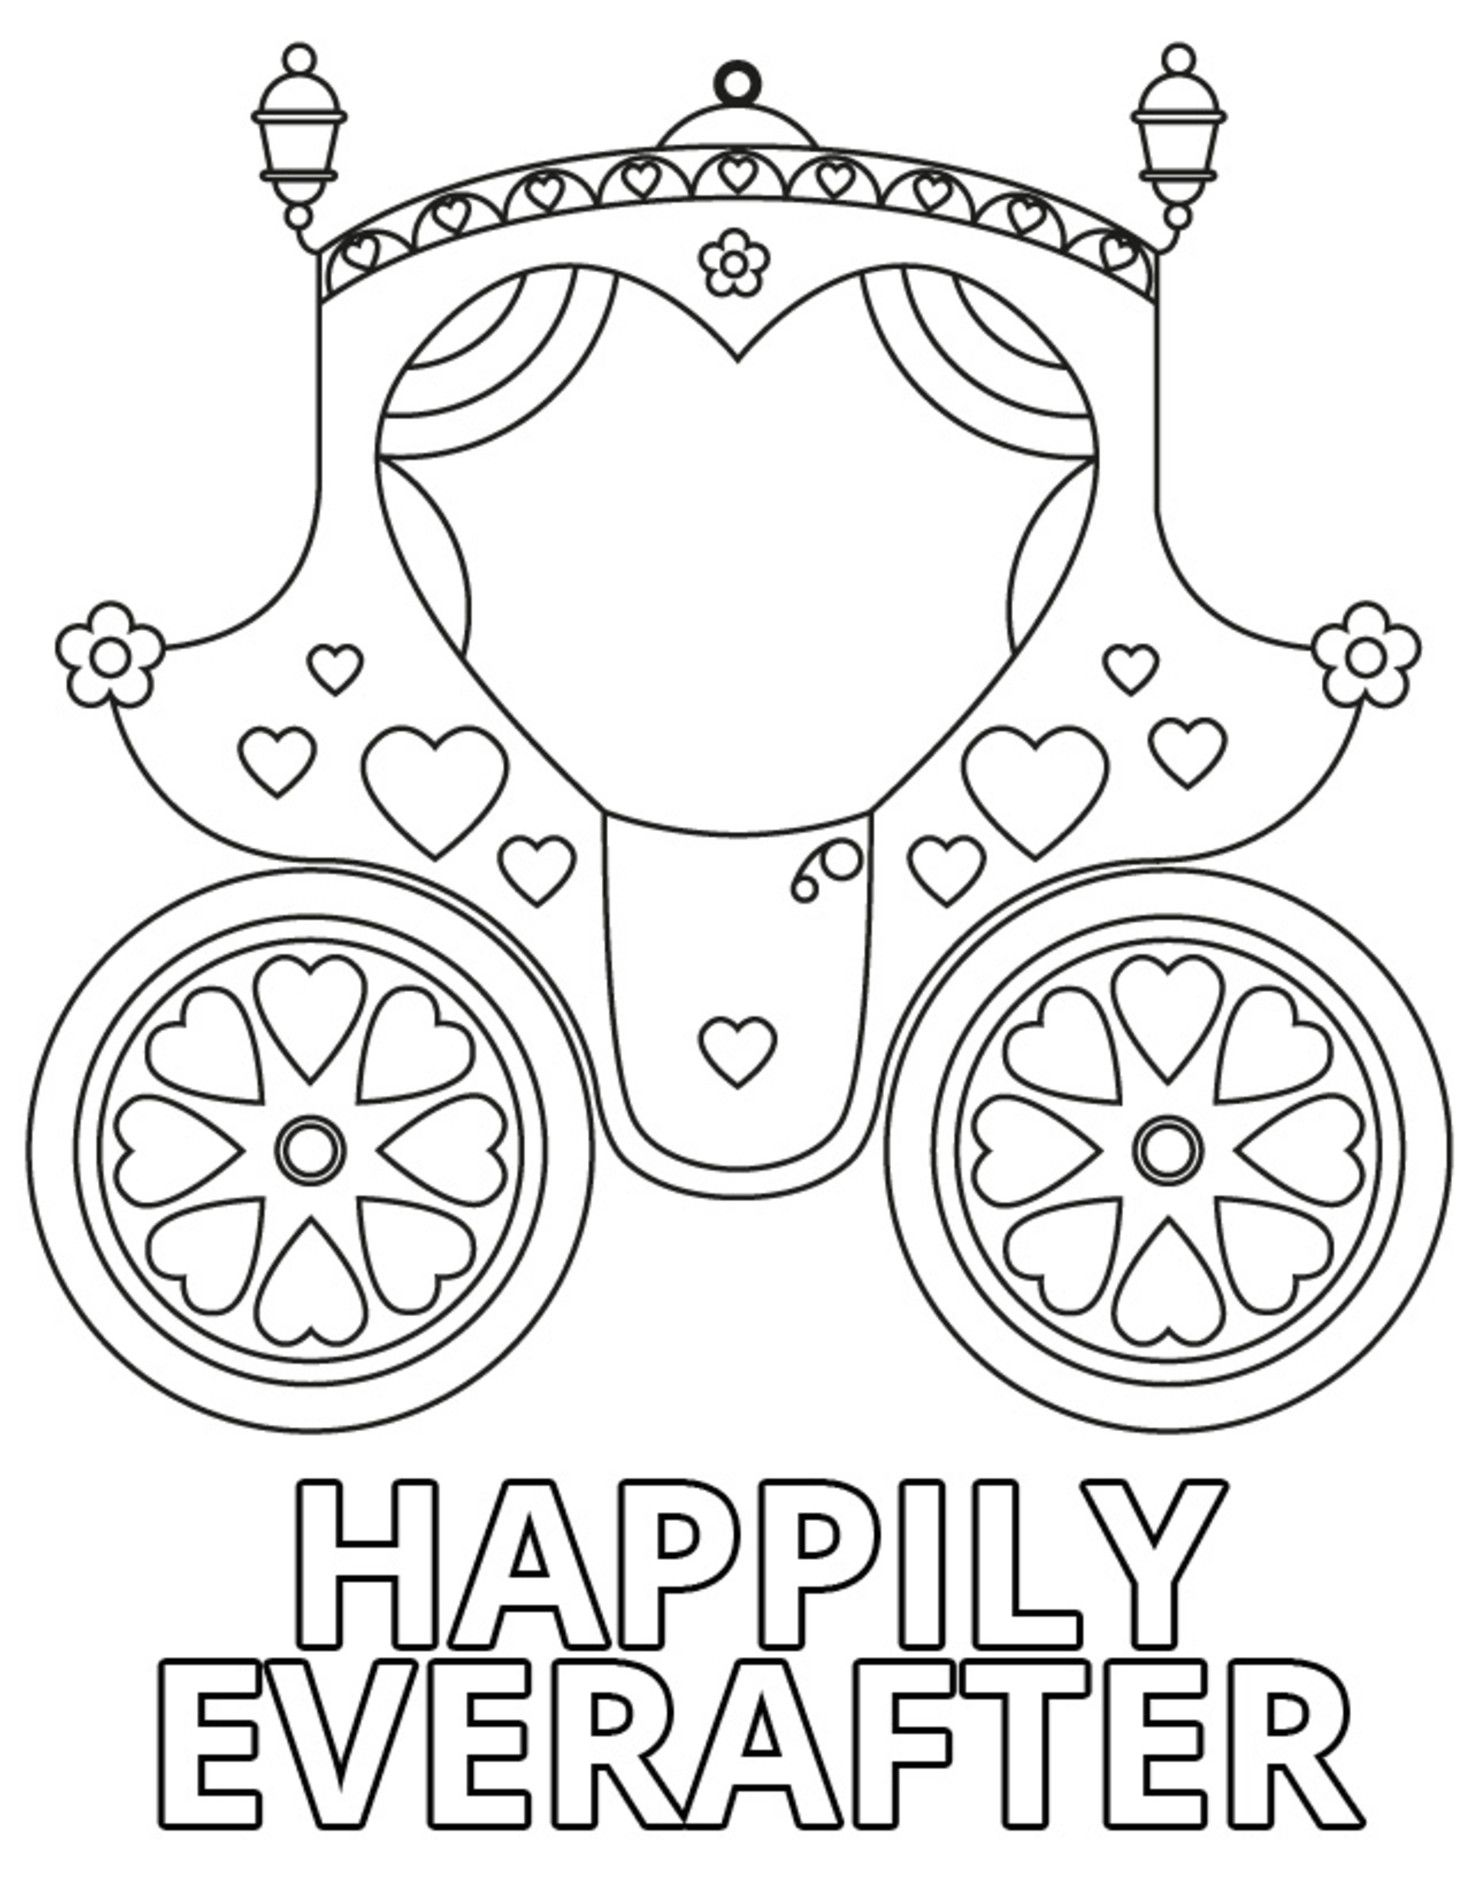 Uncategorized Free Wedding Coloring Pages To Print 17 wedding coloring pages for kids who love to dream about their big day happily ever after